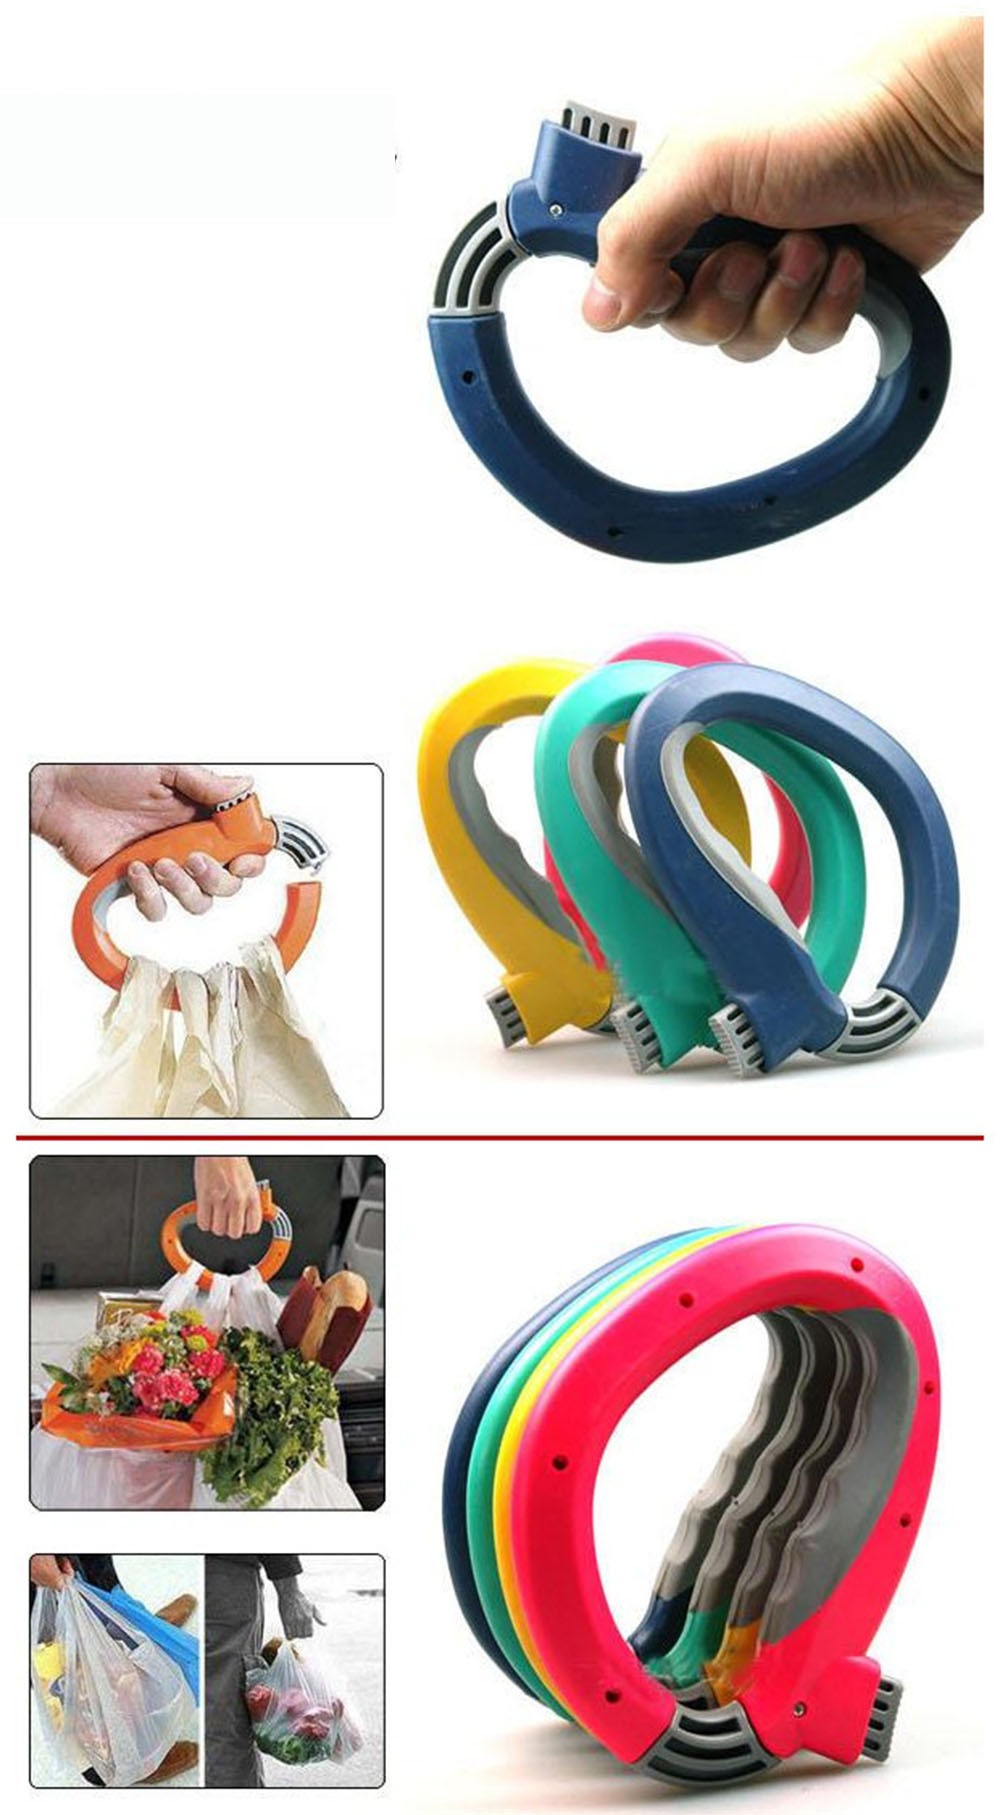 Bag-Grips-One-Trip-Grip-Shopping-Grocery-Bag-Kitchen-Tool-Gift-Baskets-Holder-Handle-Carrier-Lock-Labor-Saving-Tool-KC1120 (1)